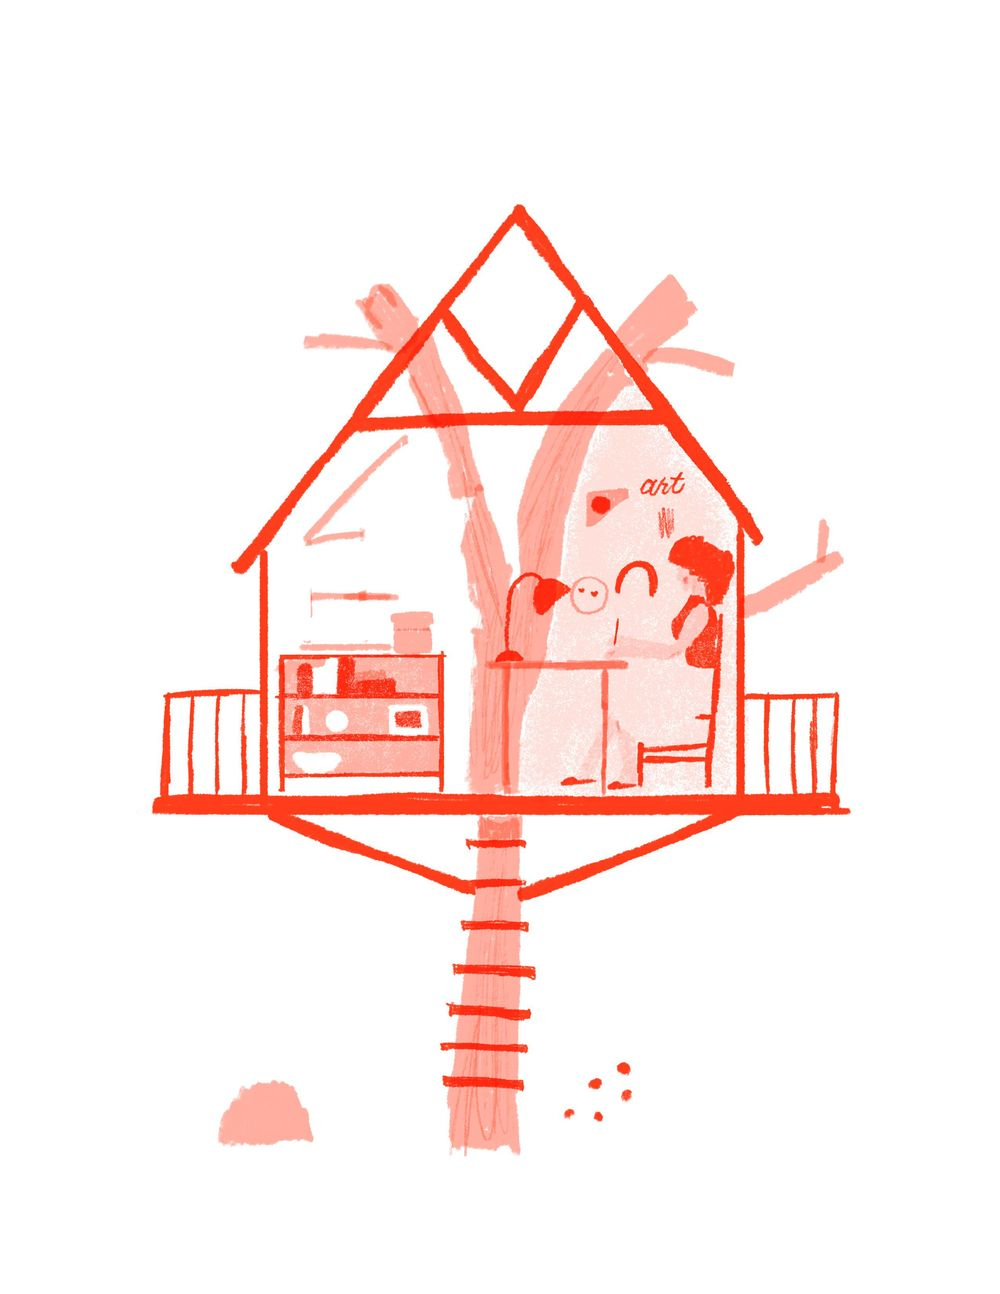 My dream studio: A Tree House - image 3 - student project